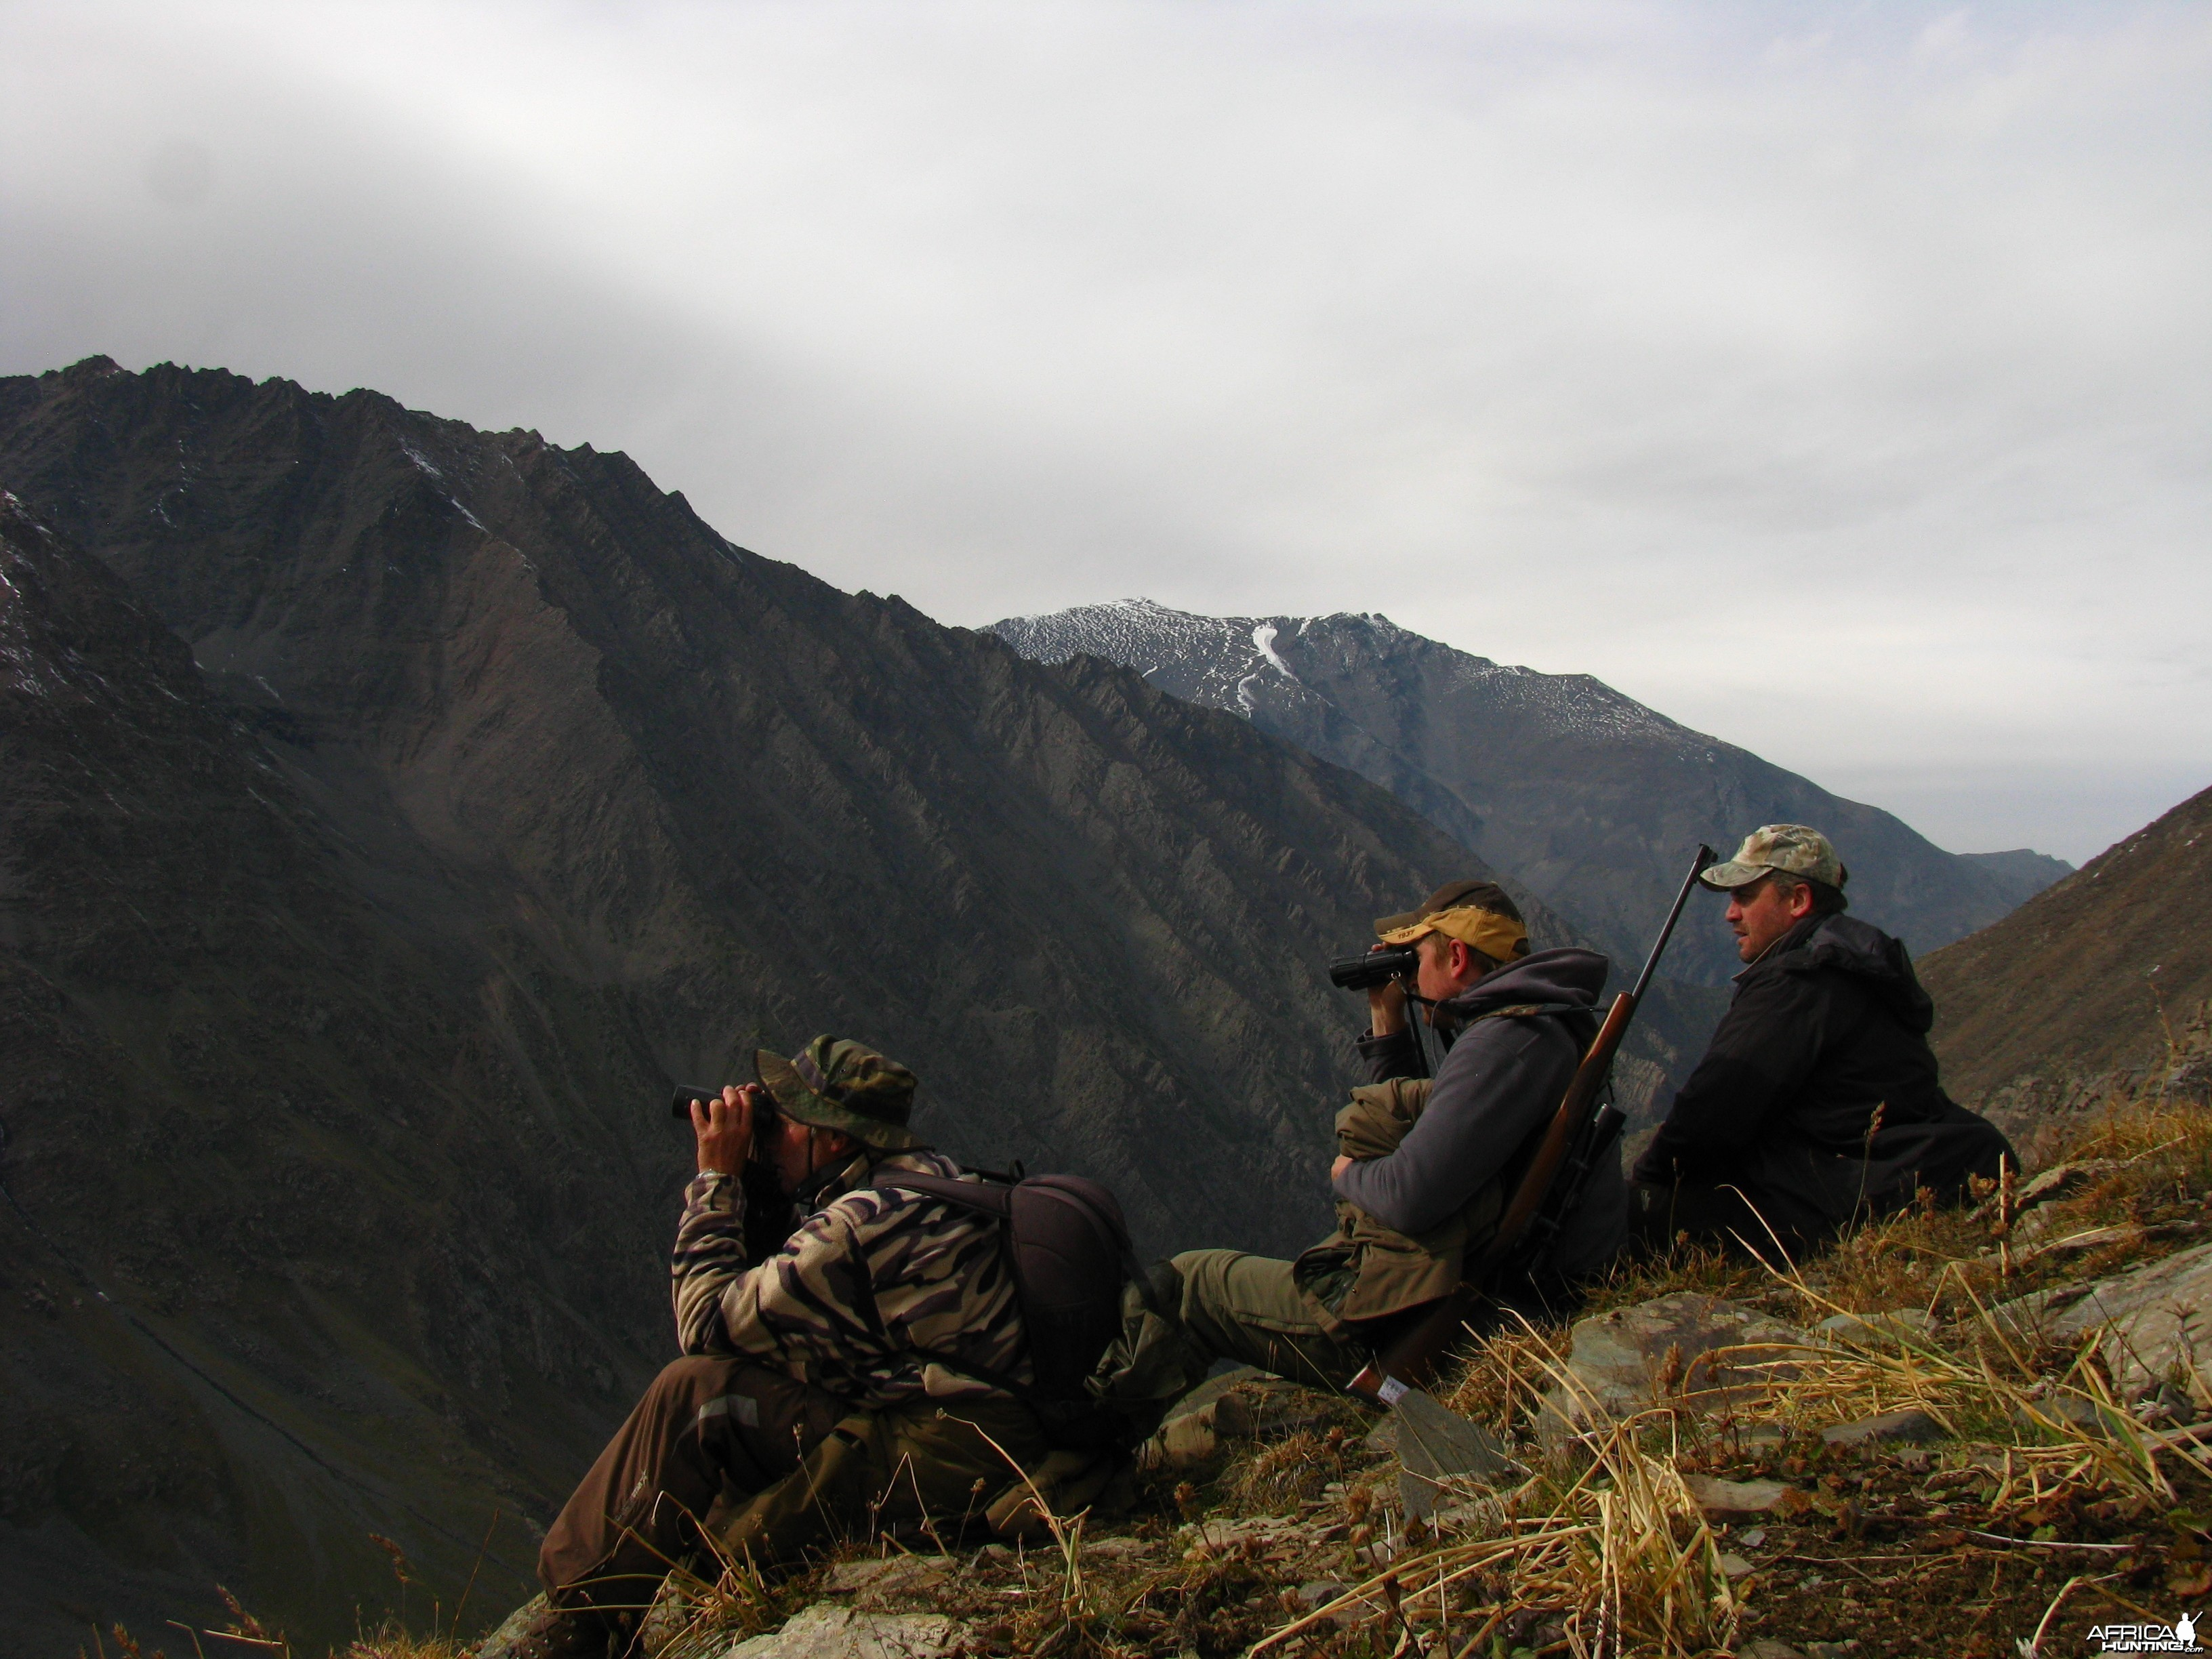 Glassing for Ibex